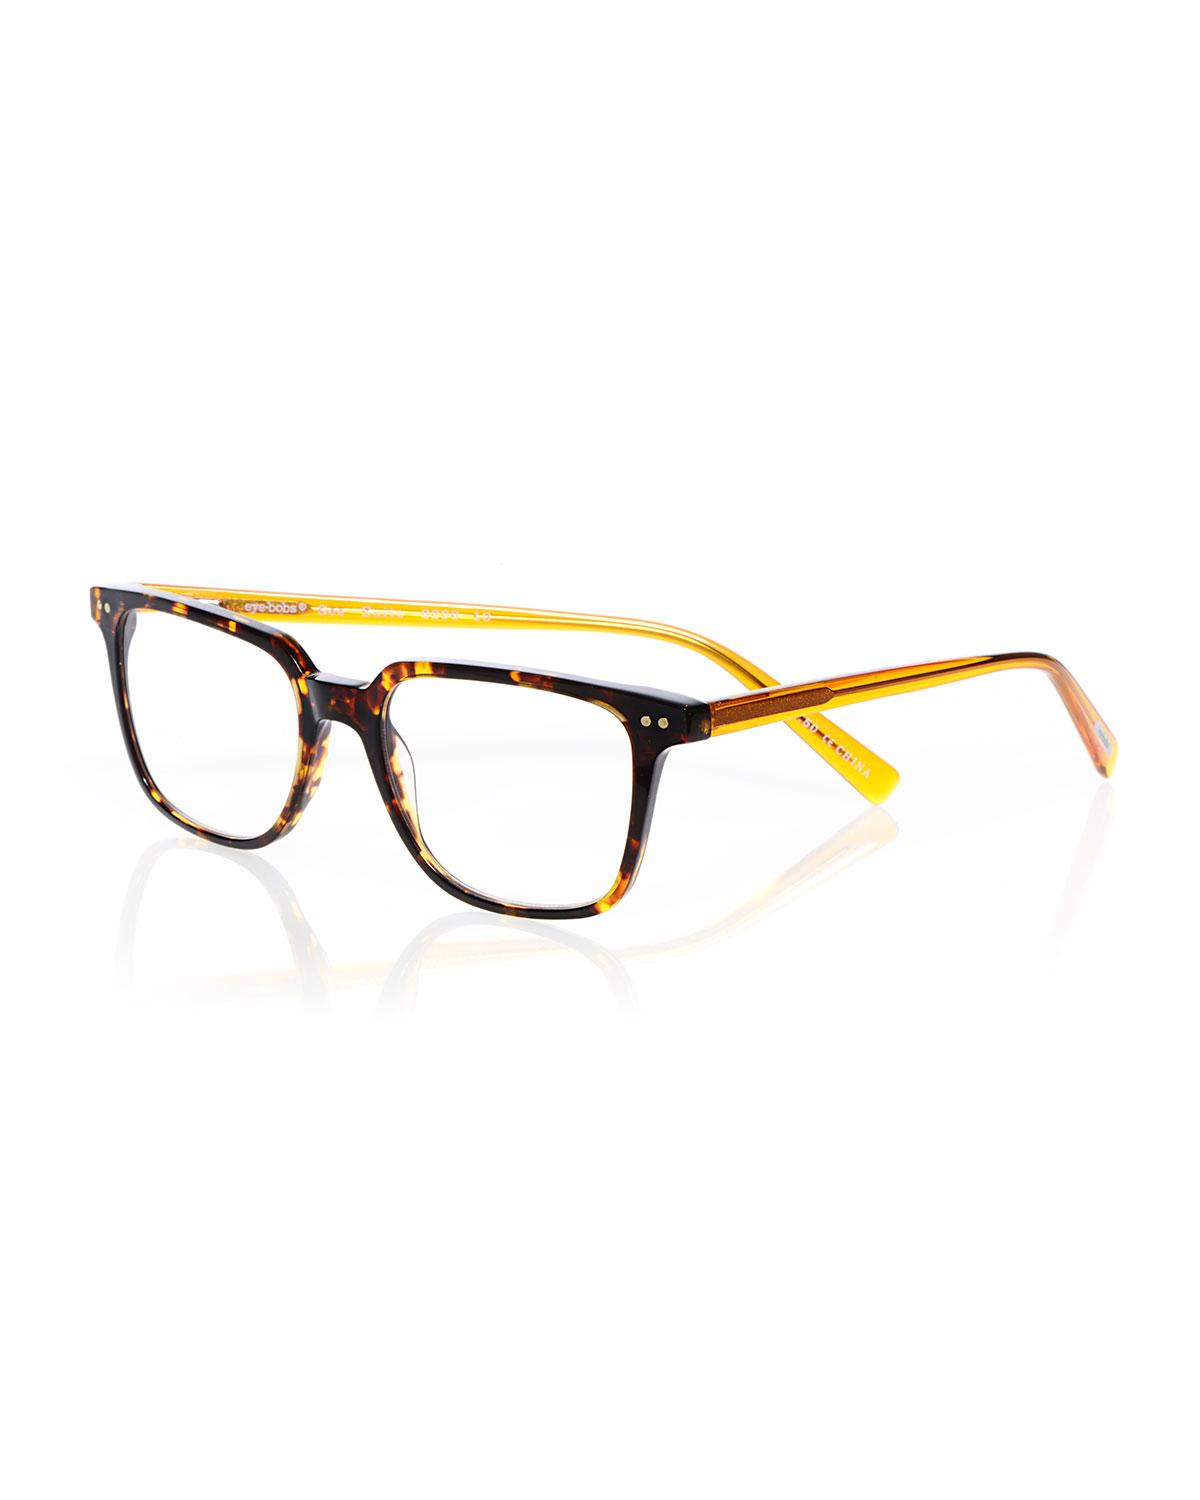 5d04be10097 Eyebobs C Suite Square Acetate Reading Glasses